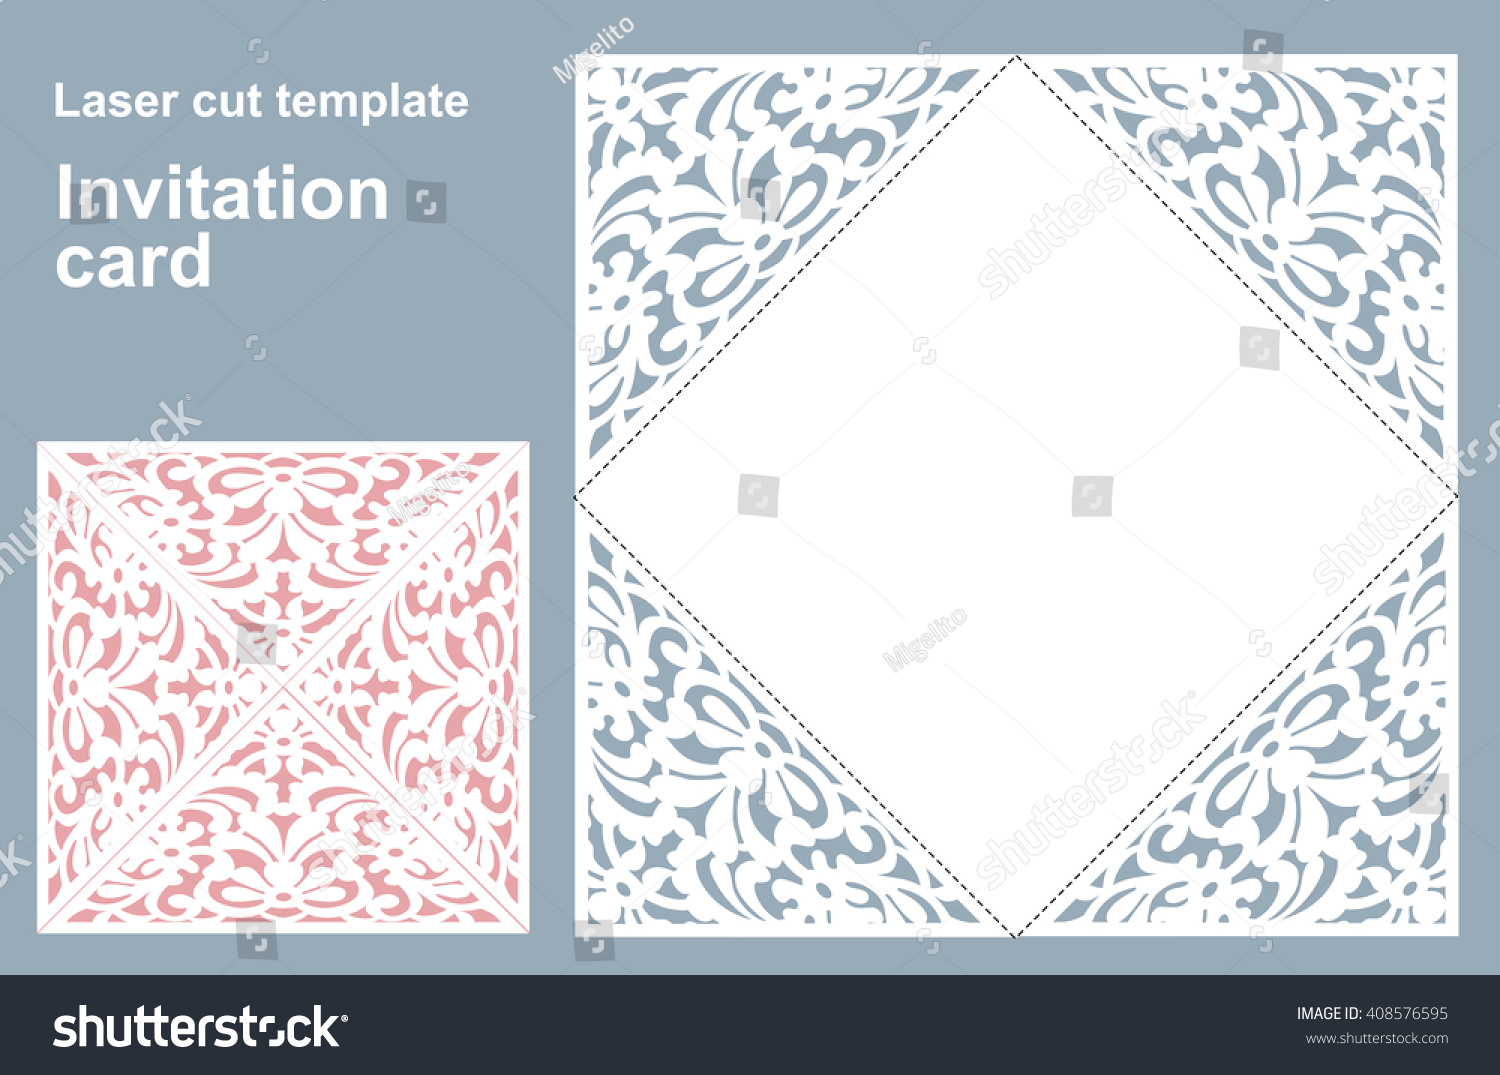 Laser cut wedding invitations template free vector designs - oukas.info